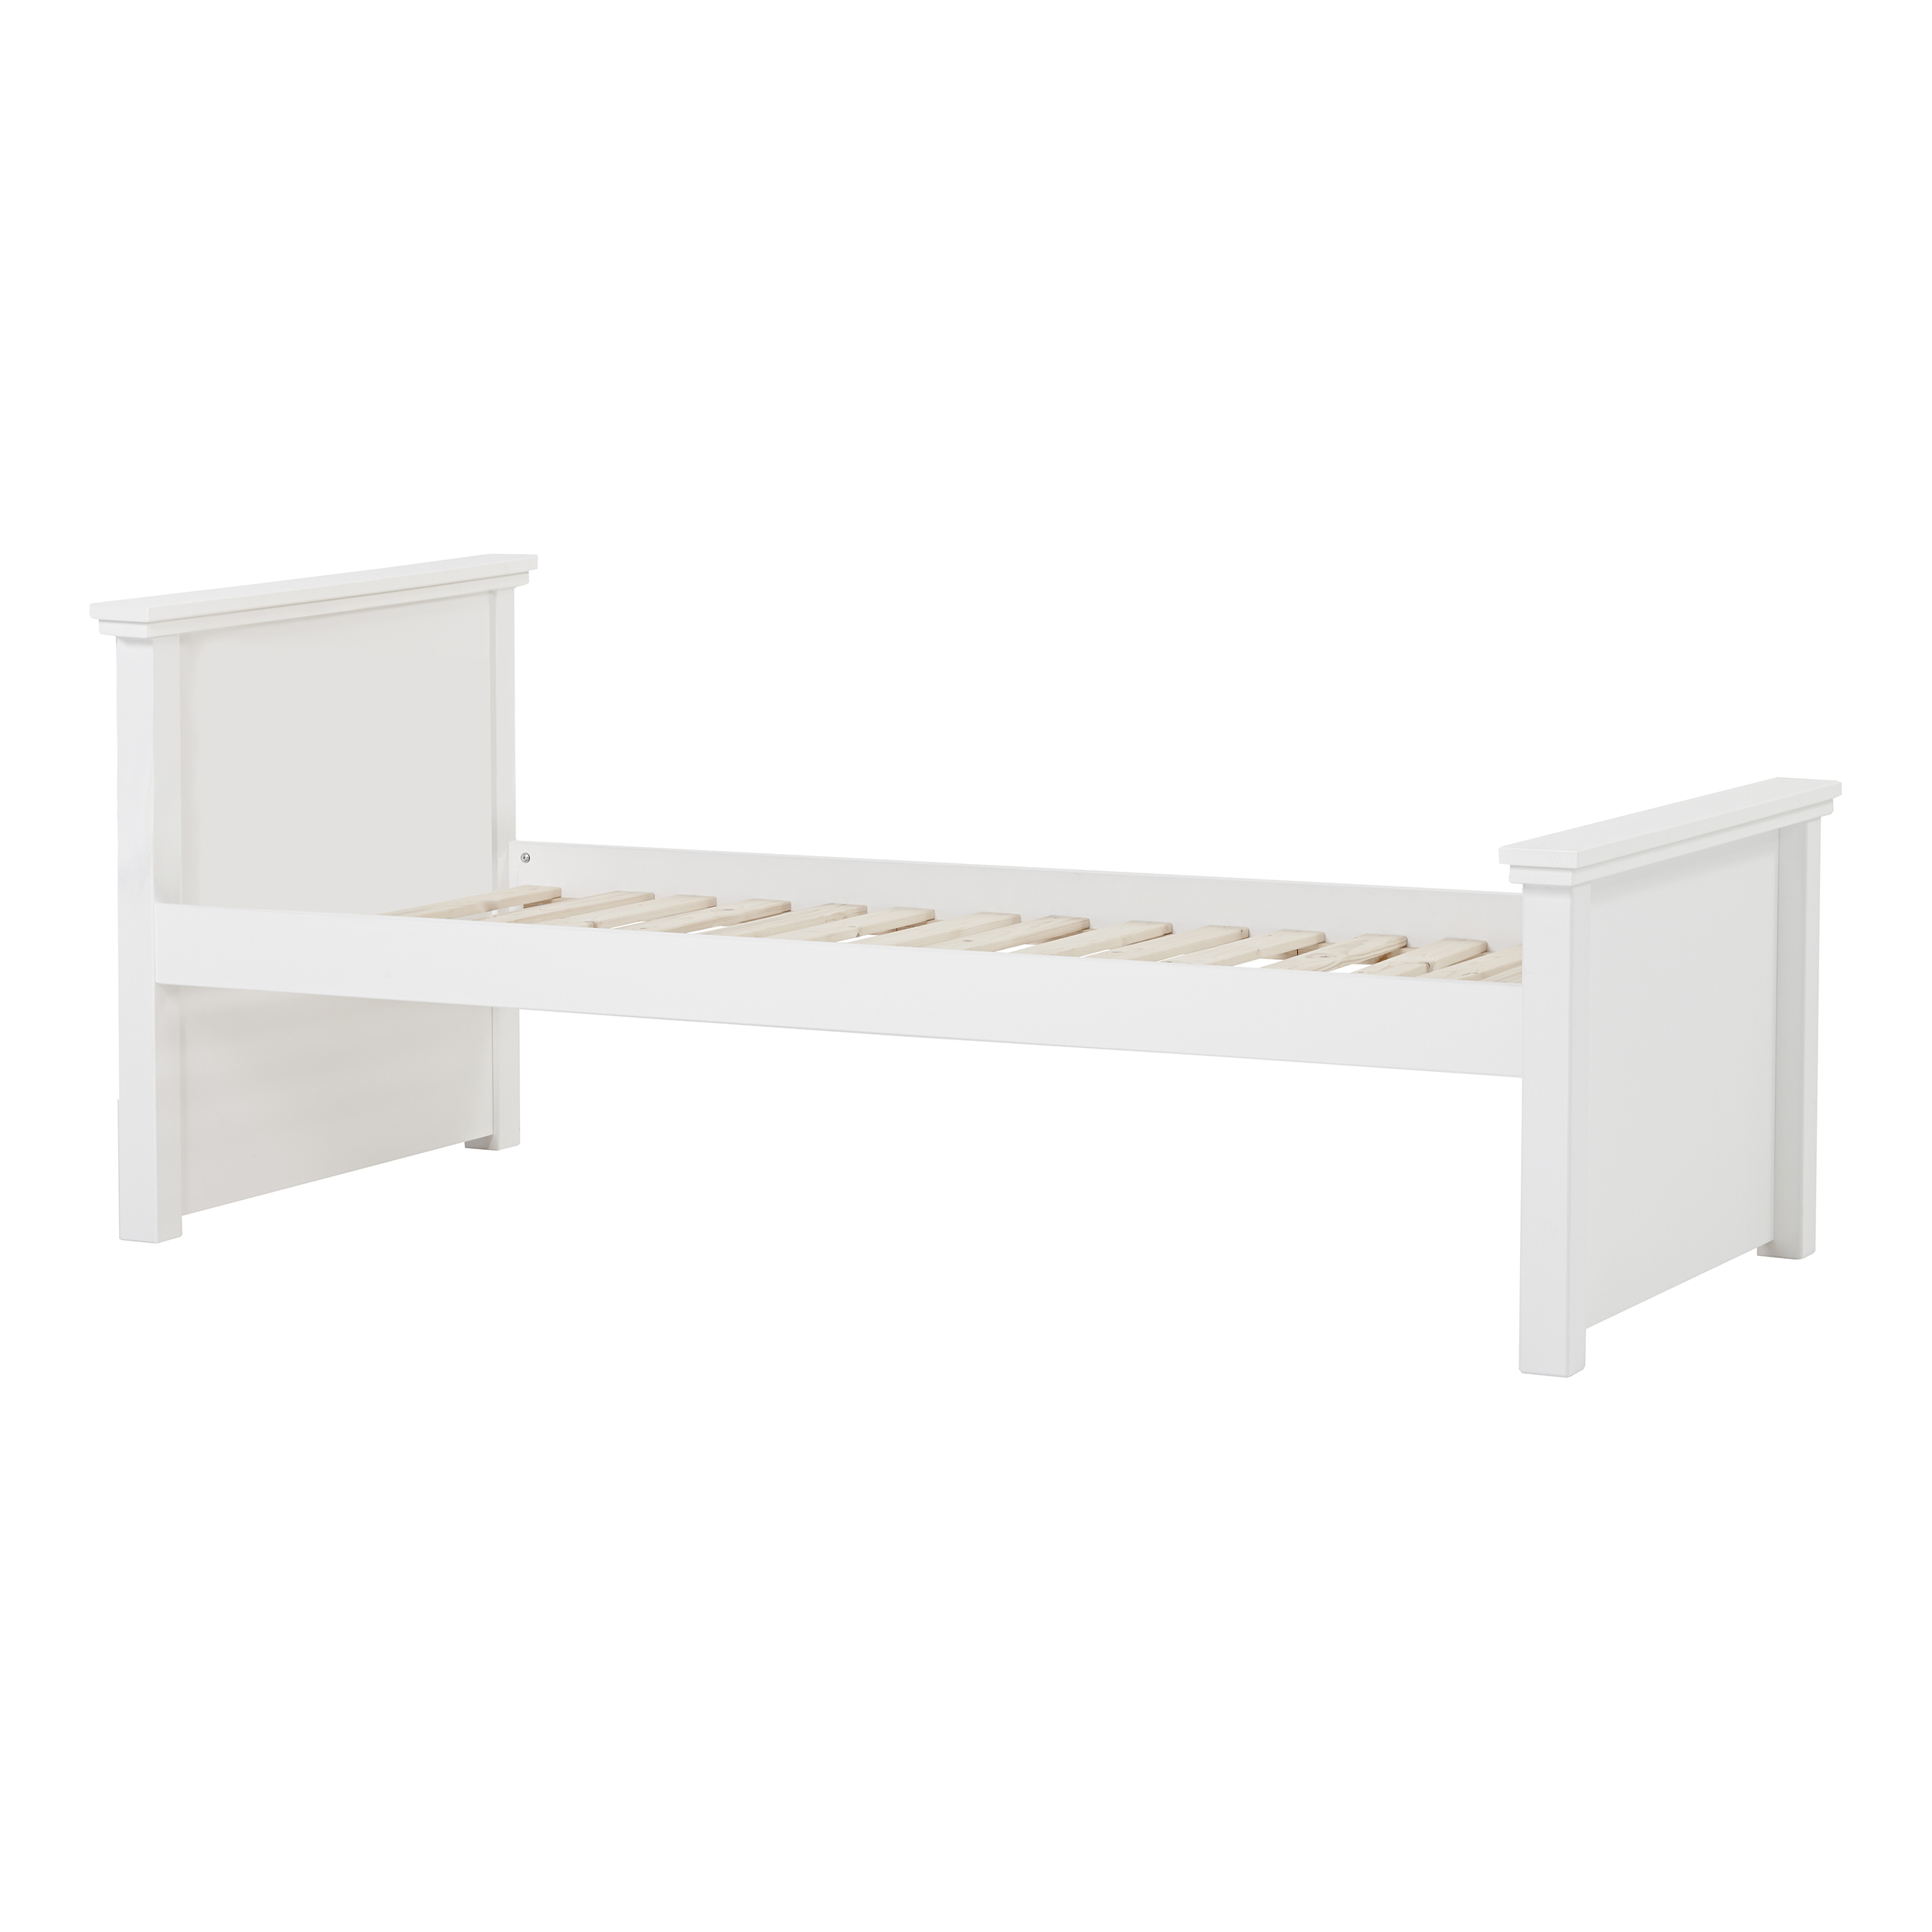 Hoppekids - MAJA DELUXE Junior bed w. High and Medium bed ends 90x200 cm - White